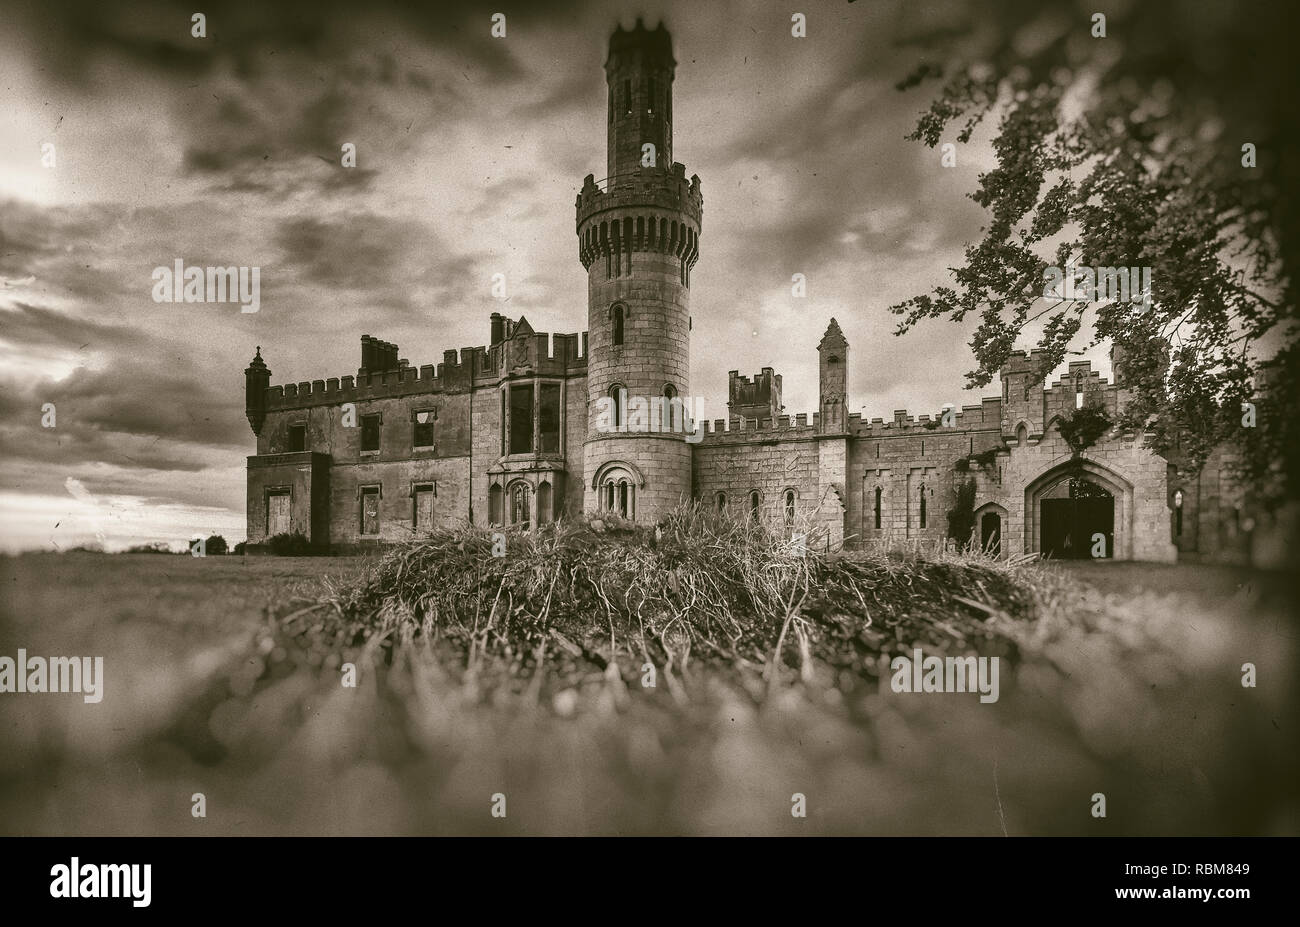 Old medieval castle ruins, tree and stormy sky in sepia style - Stock Image